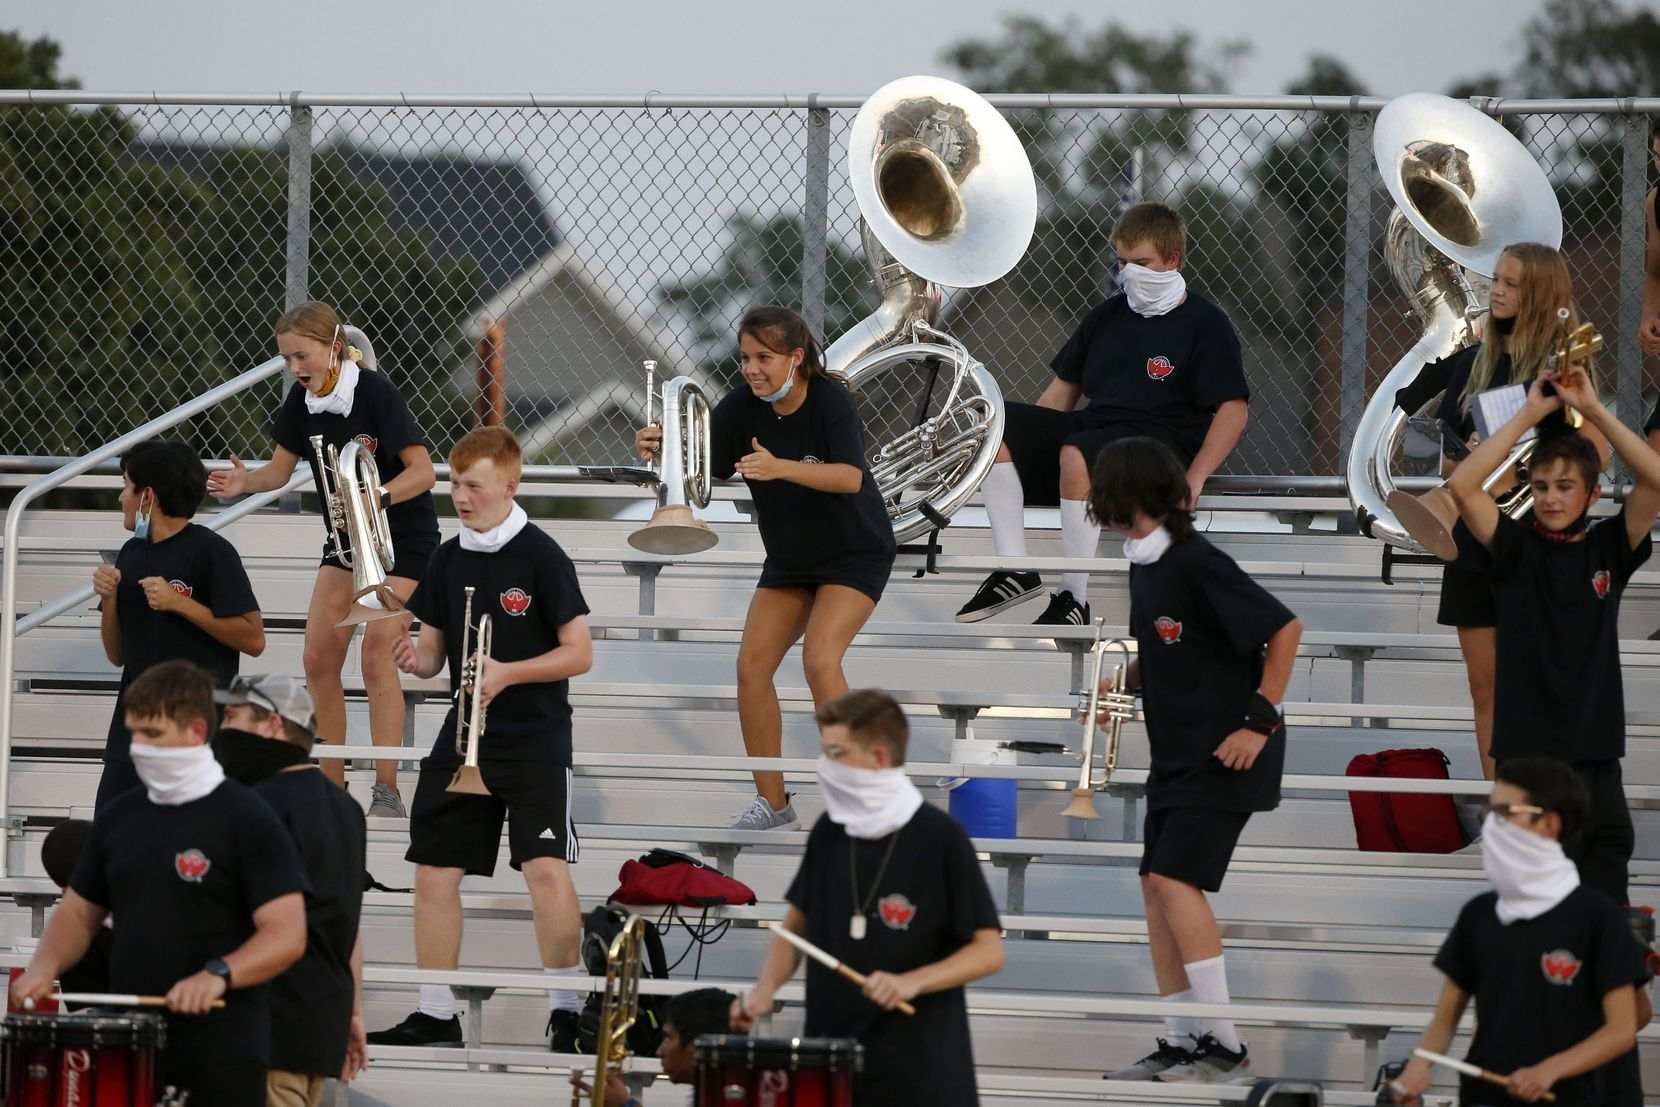 The Argyle band plays while being social-distanced, during a high school football game against Decatur, in Argyle, Tx, on August 28, 2020. (Michael Ainsworth/Special Contributor)